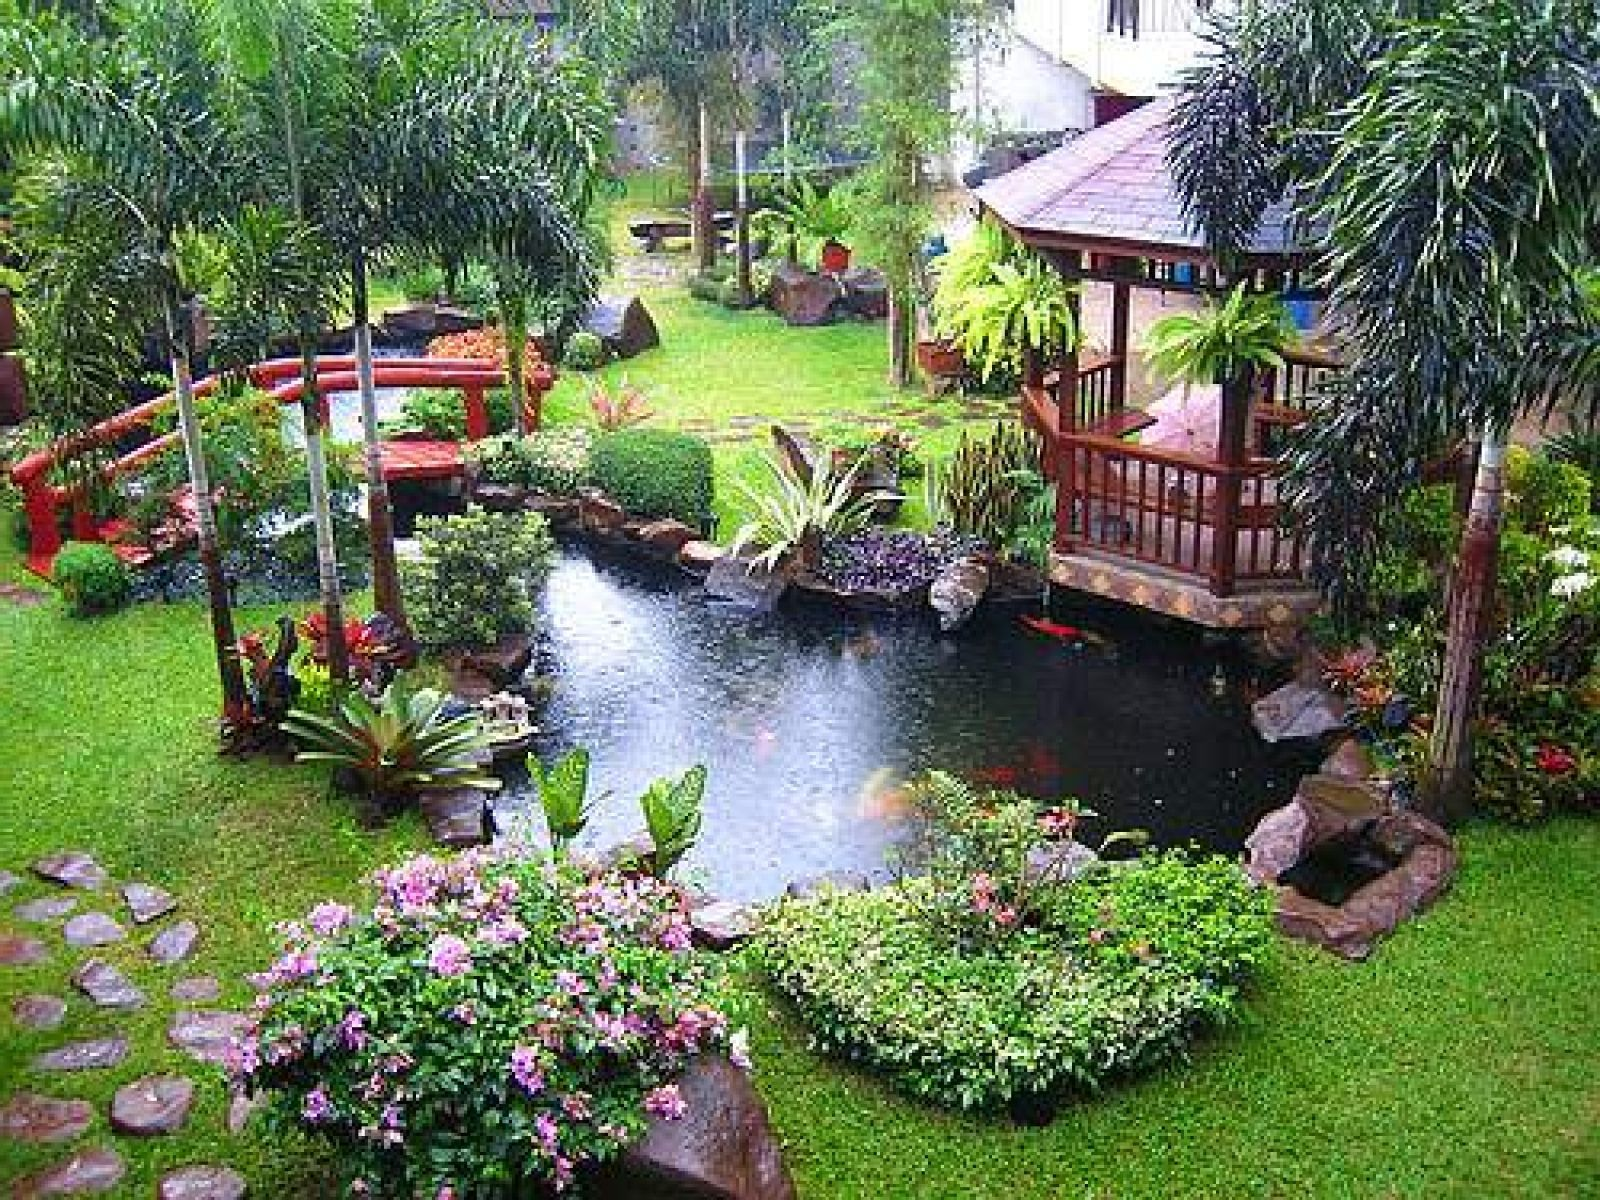 backyard ponds ideas - http://joshgrayson/5232/backyard-ponds